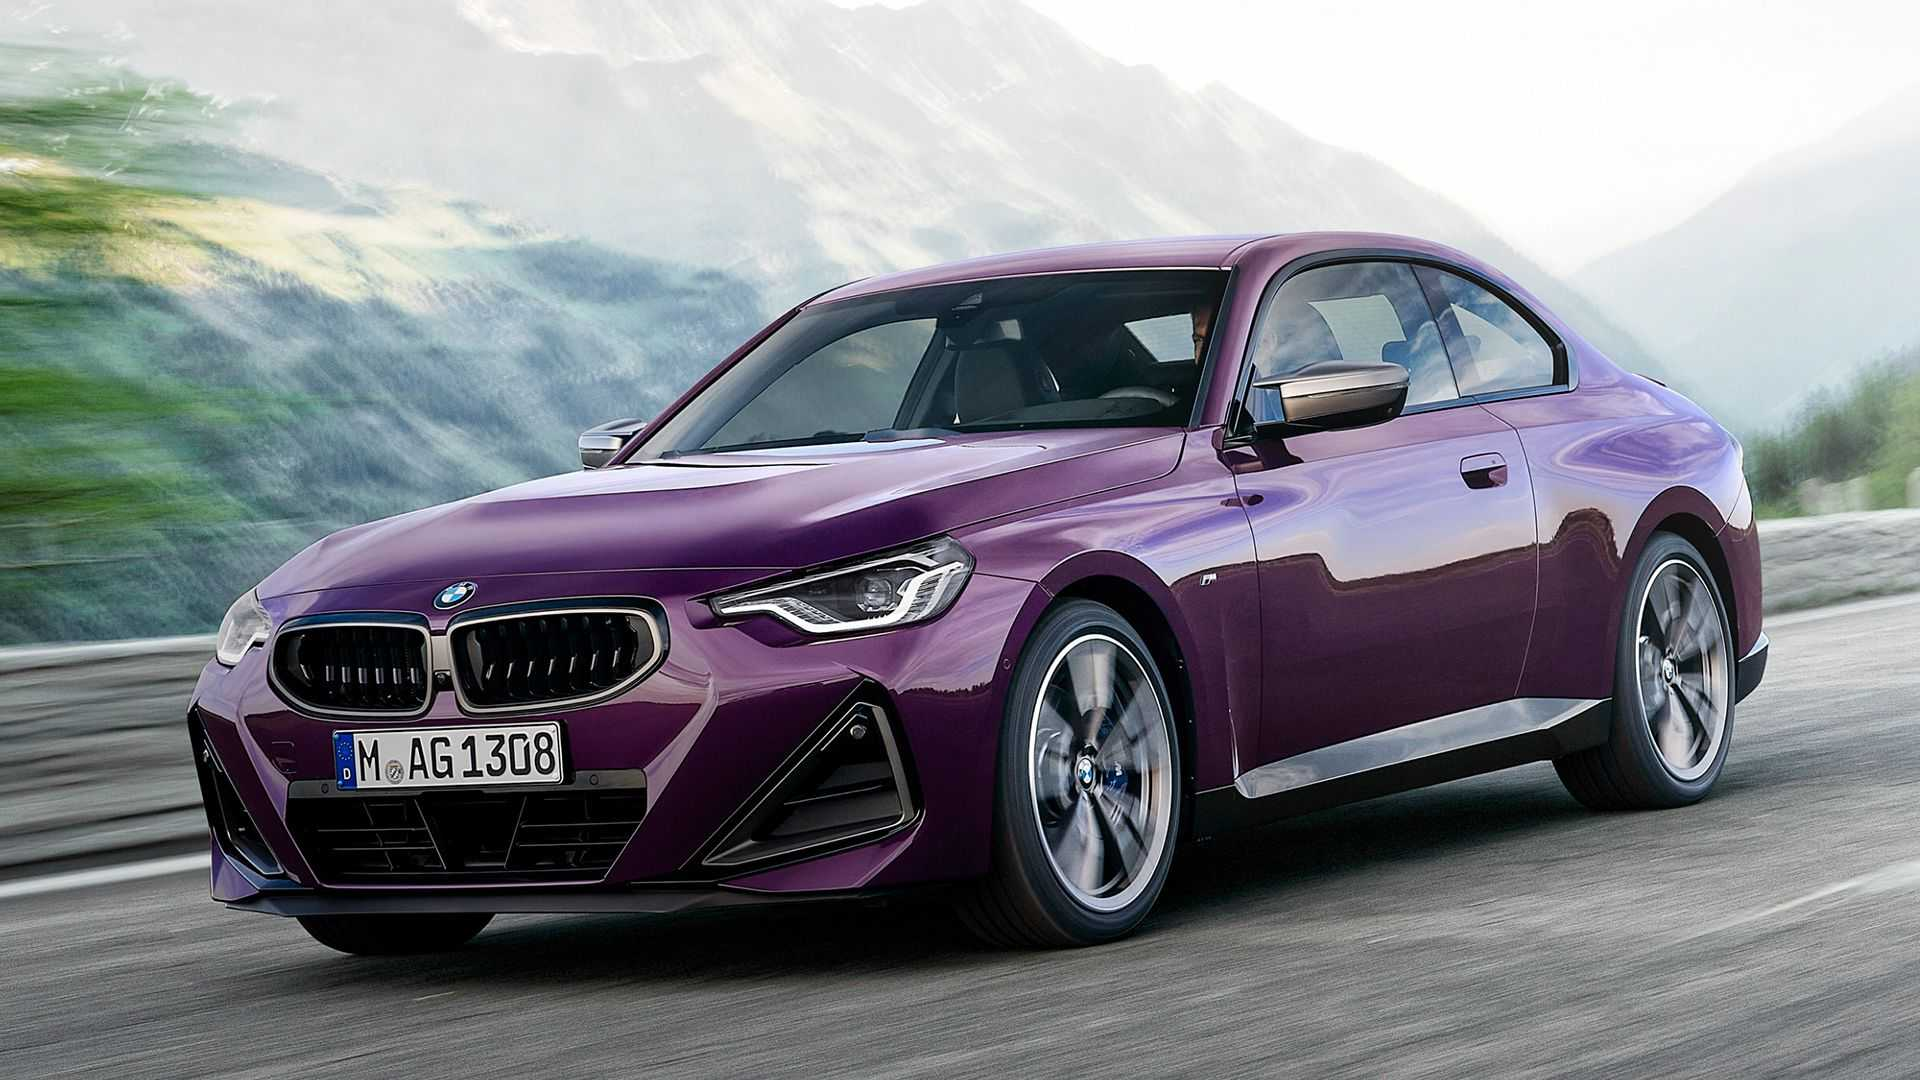 The new BMW 2 Series Coupe has arrived, and the manufacturer calls it an ideological successor to the original BMW 02 from over half a century ago.